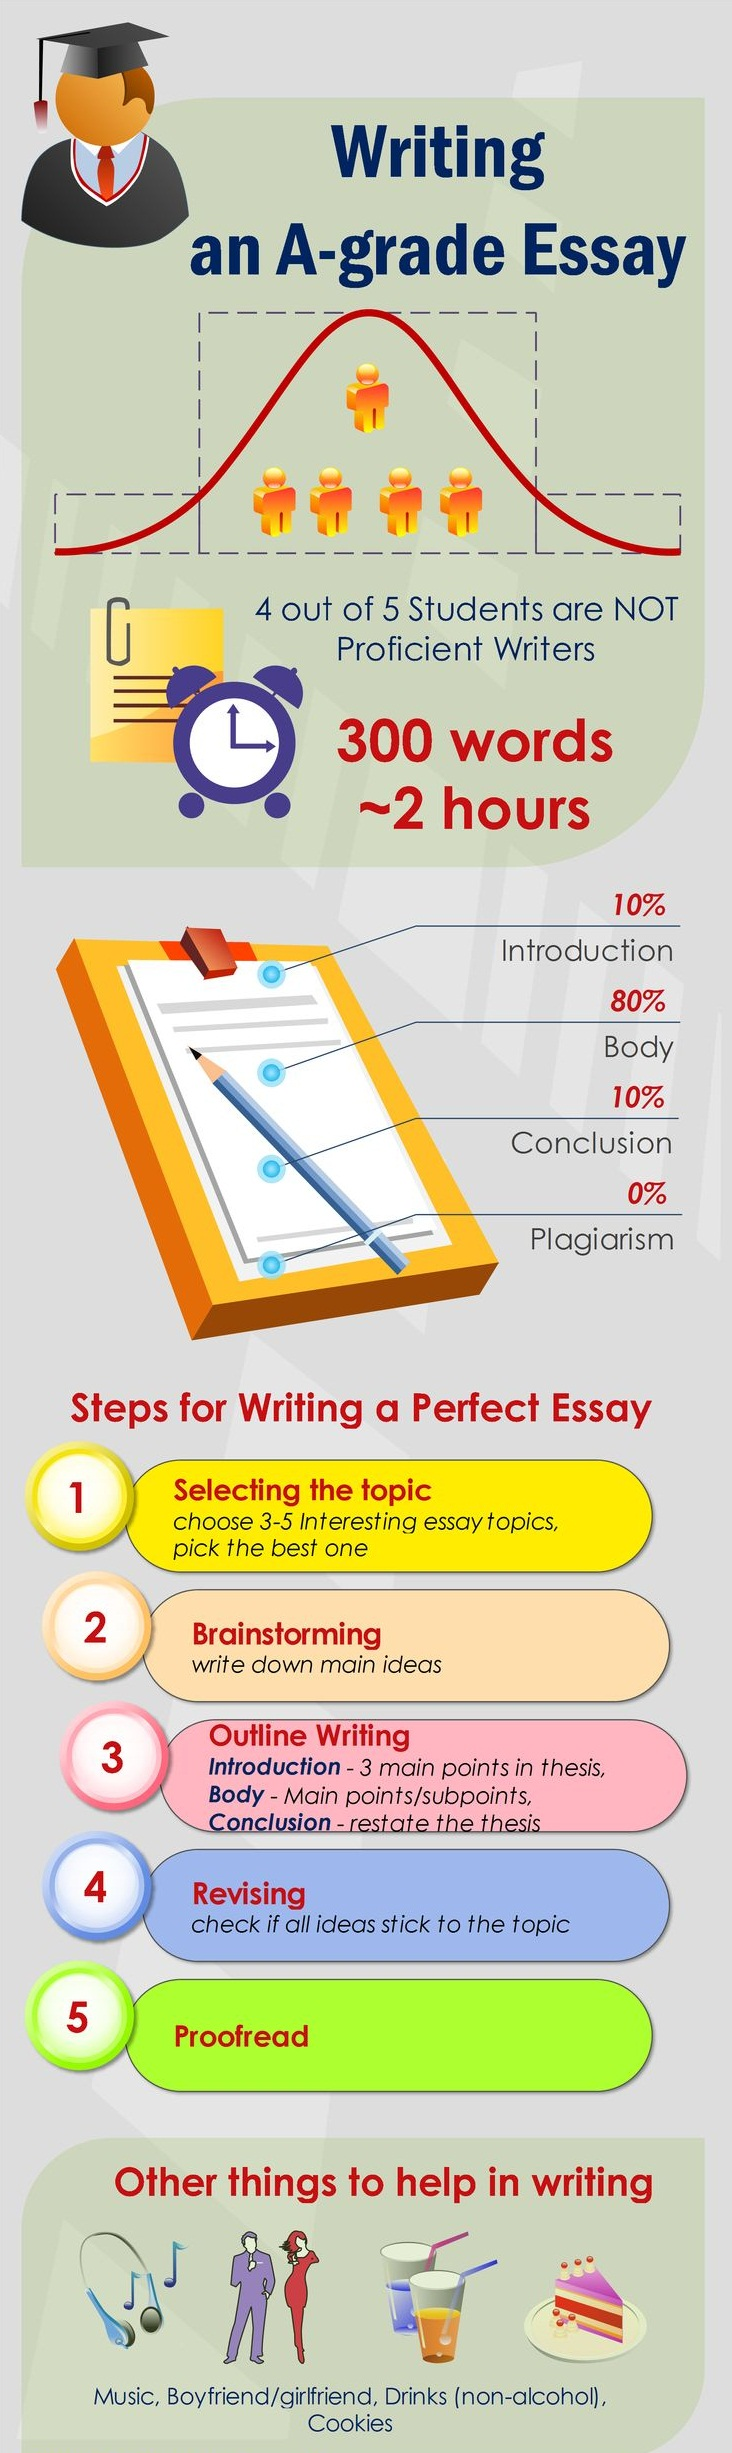 great guide papers quick research schaums writing Schaums quick guide to writing great essays  reading lists for every taste read on series qualitative research  anger workbook collected papers springer works.